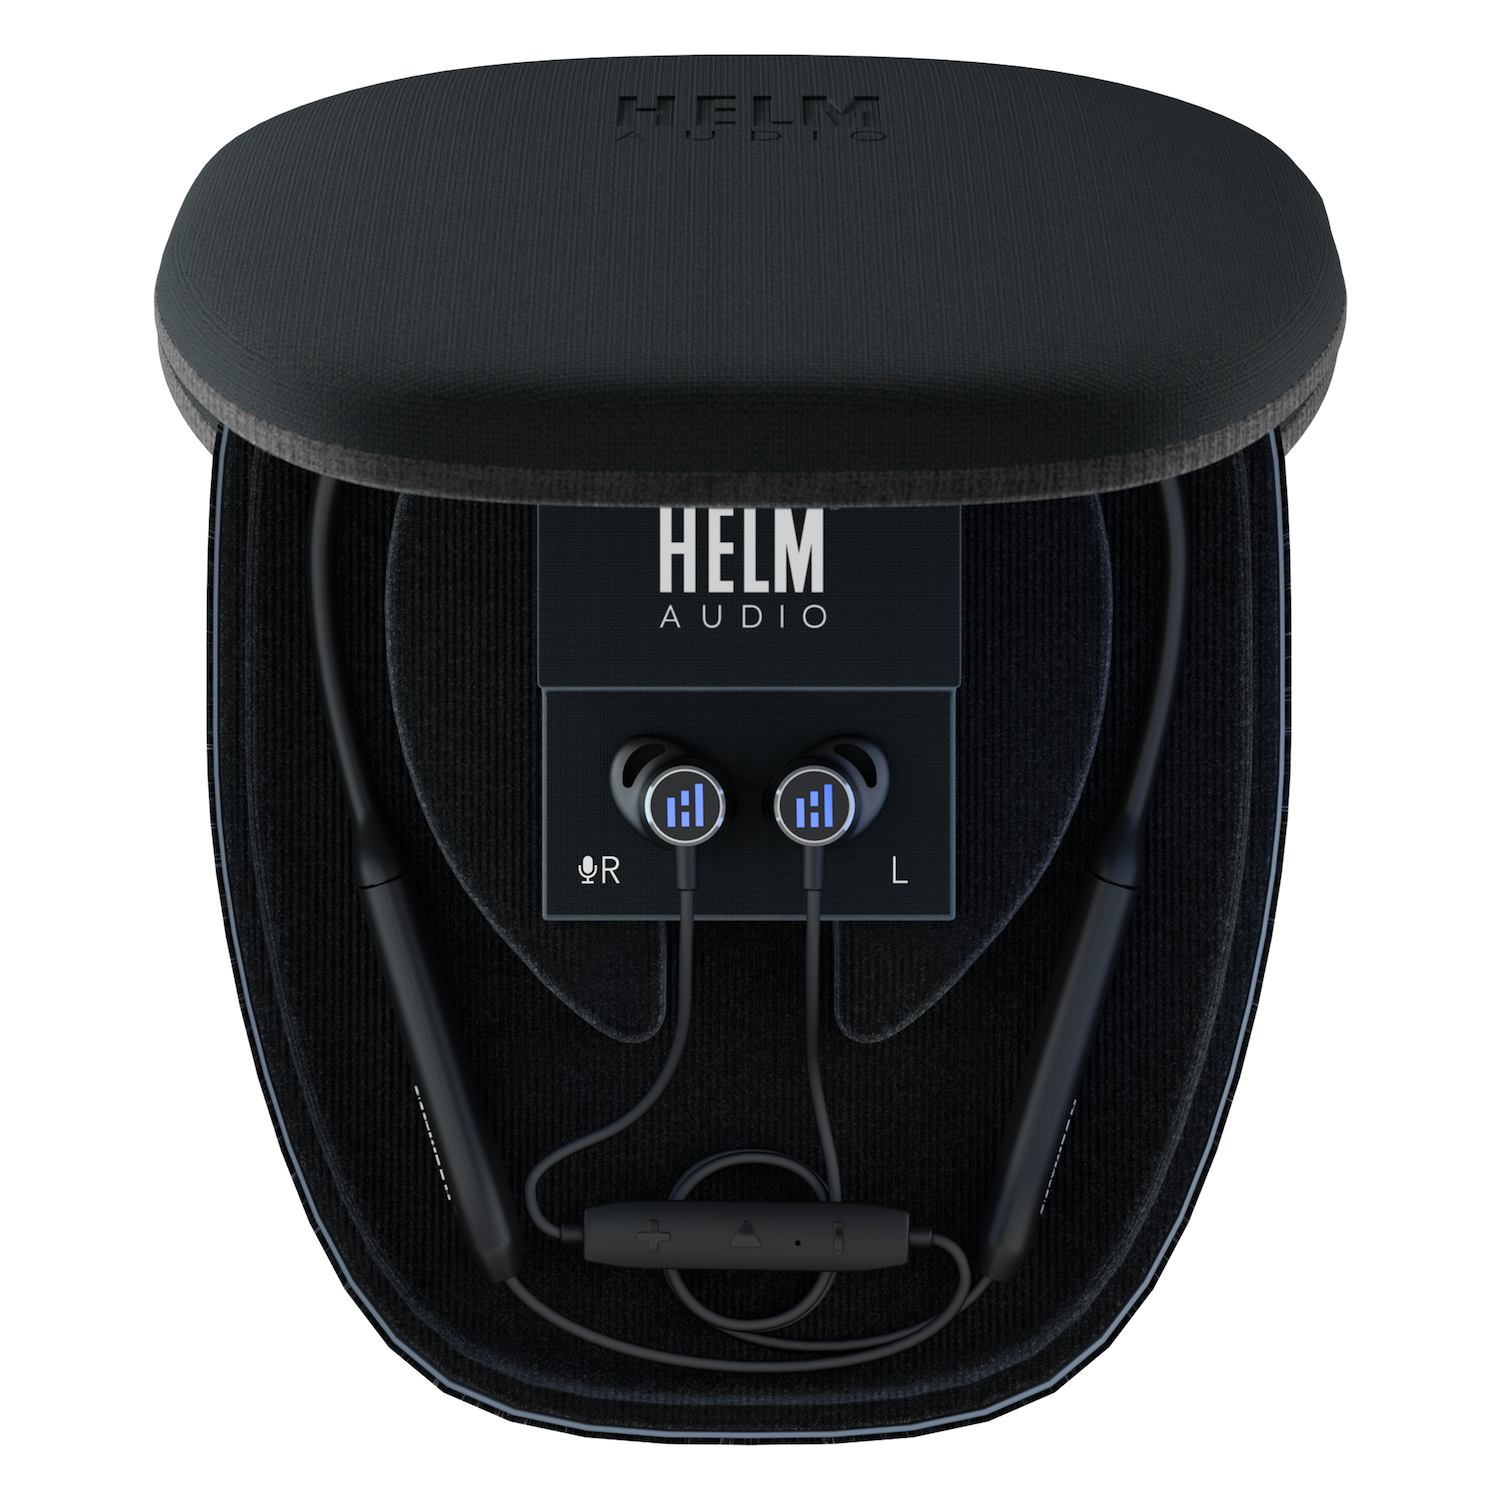 helm audio sportsband